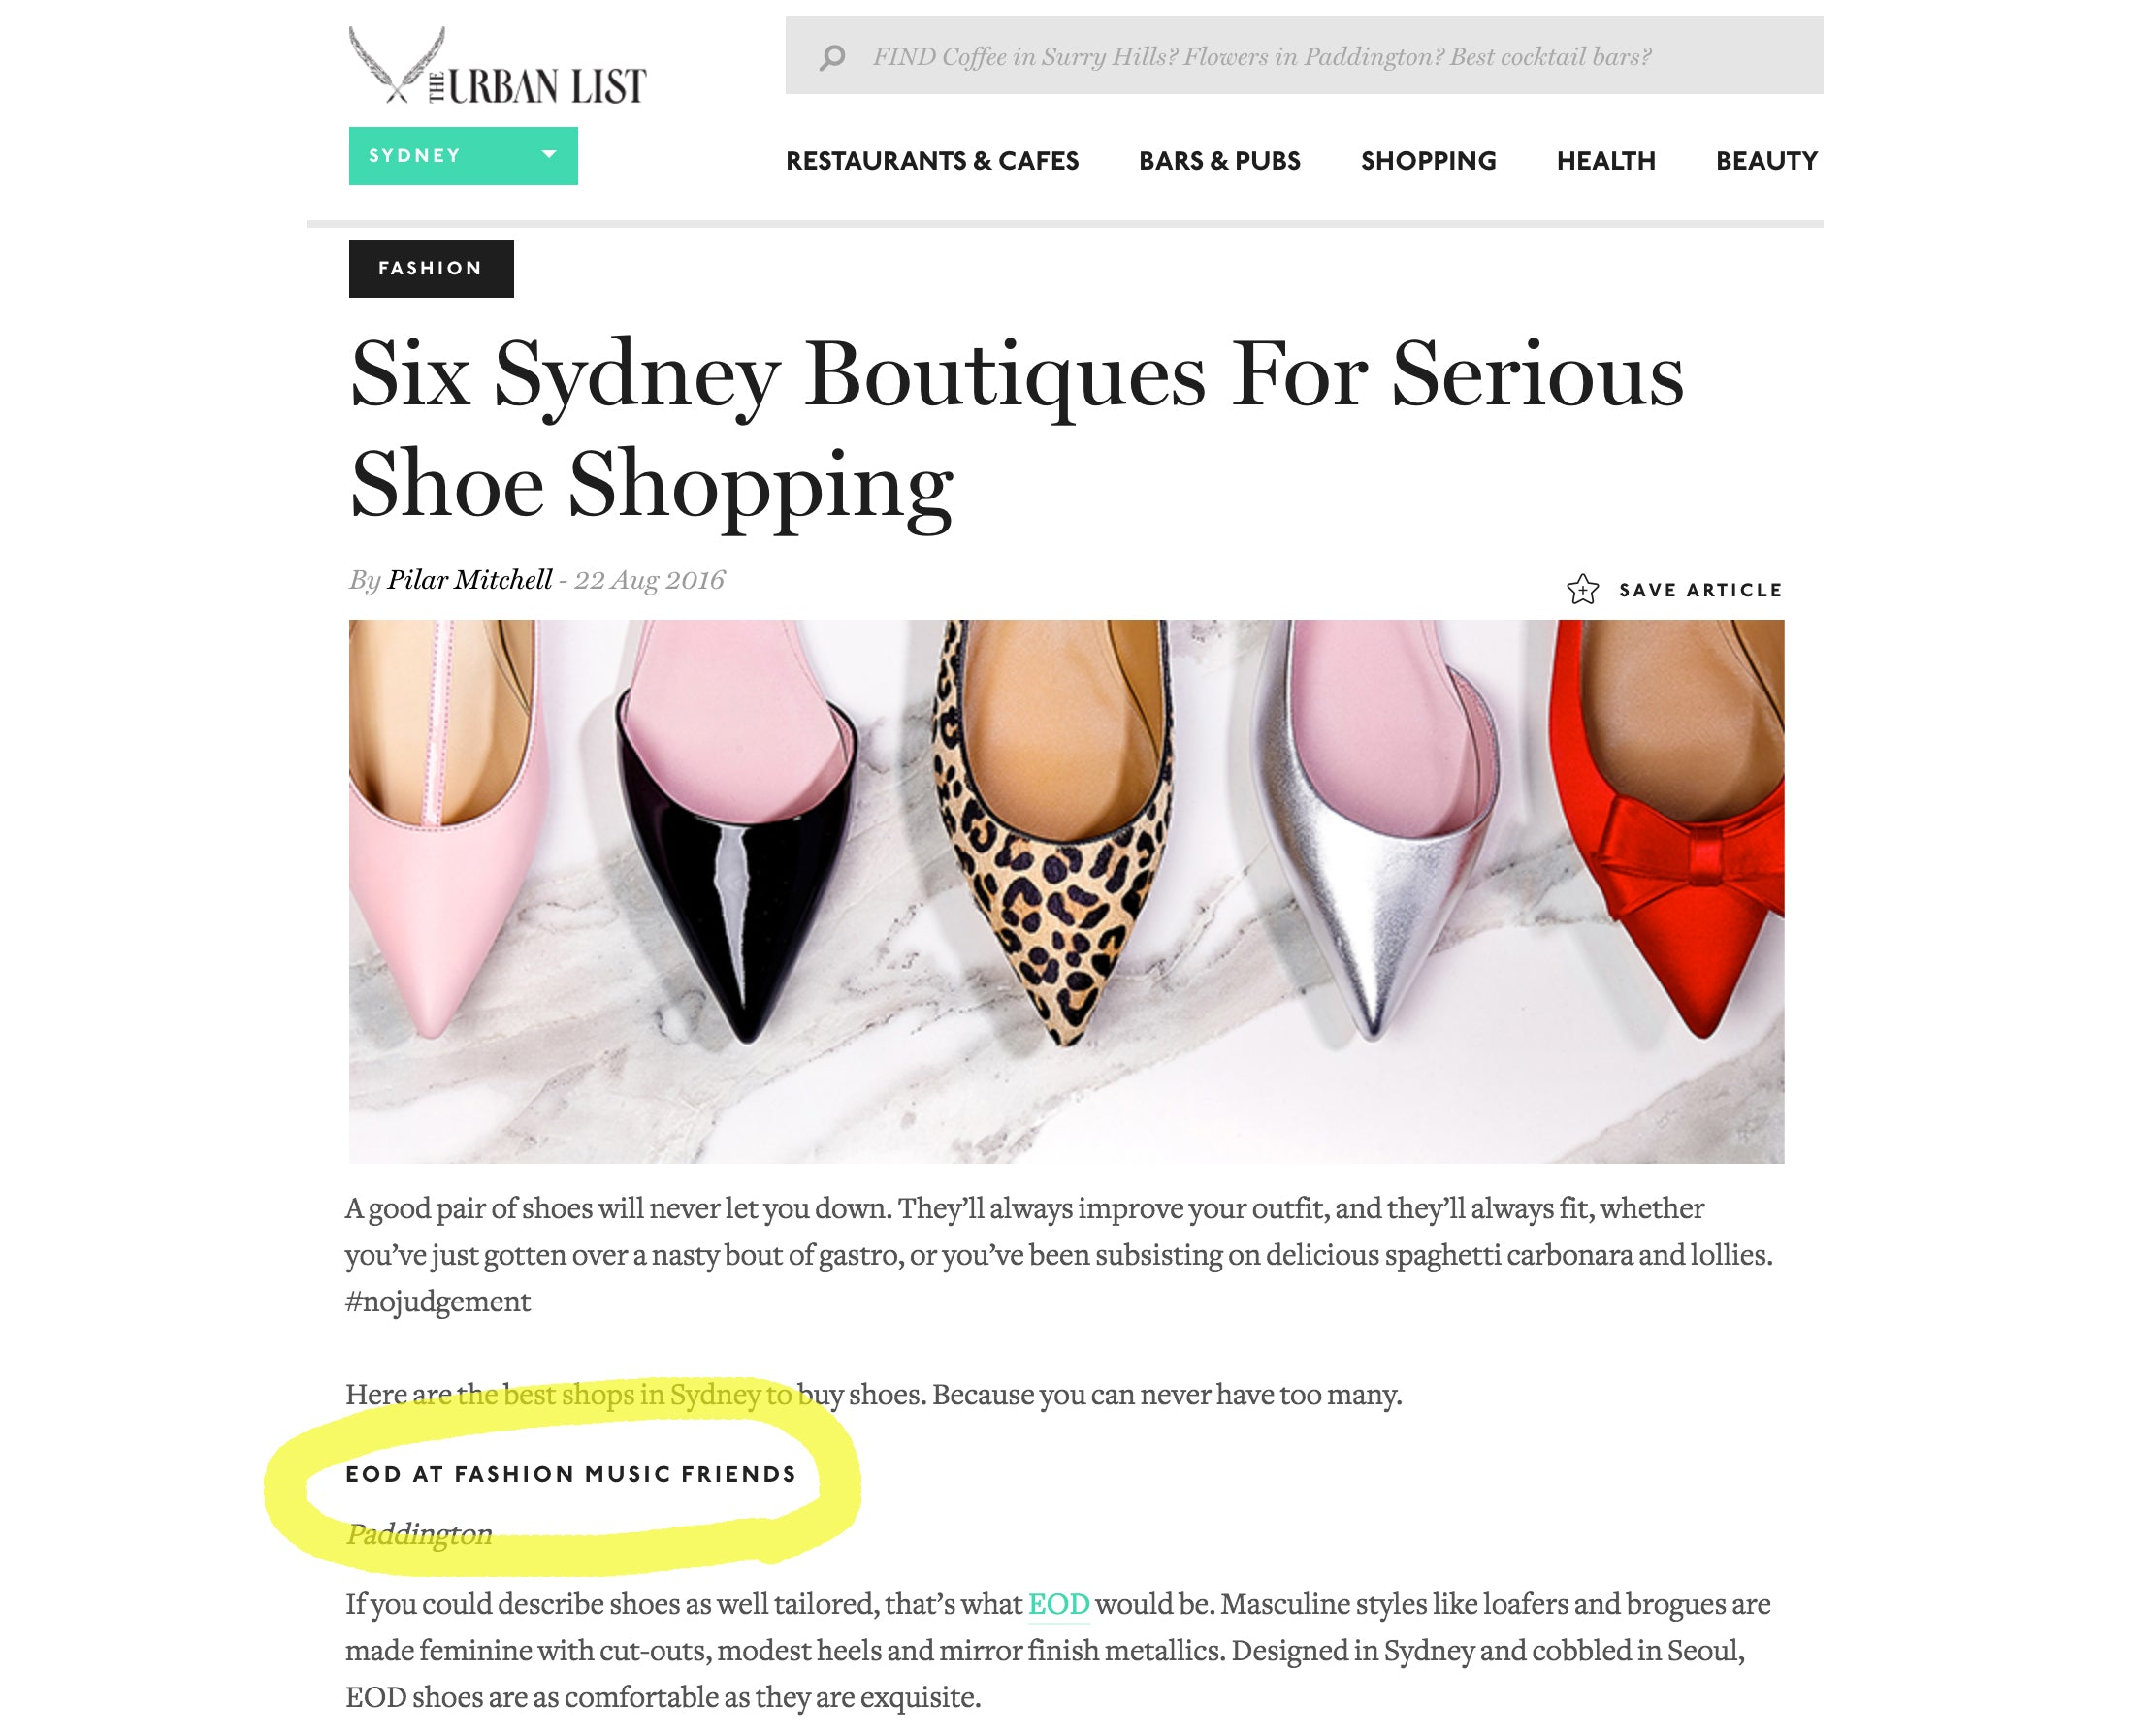 The Urban List - Guide for Shoe Shopping in Sydney - Women's Designer Footwear